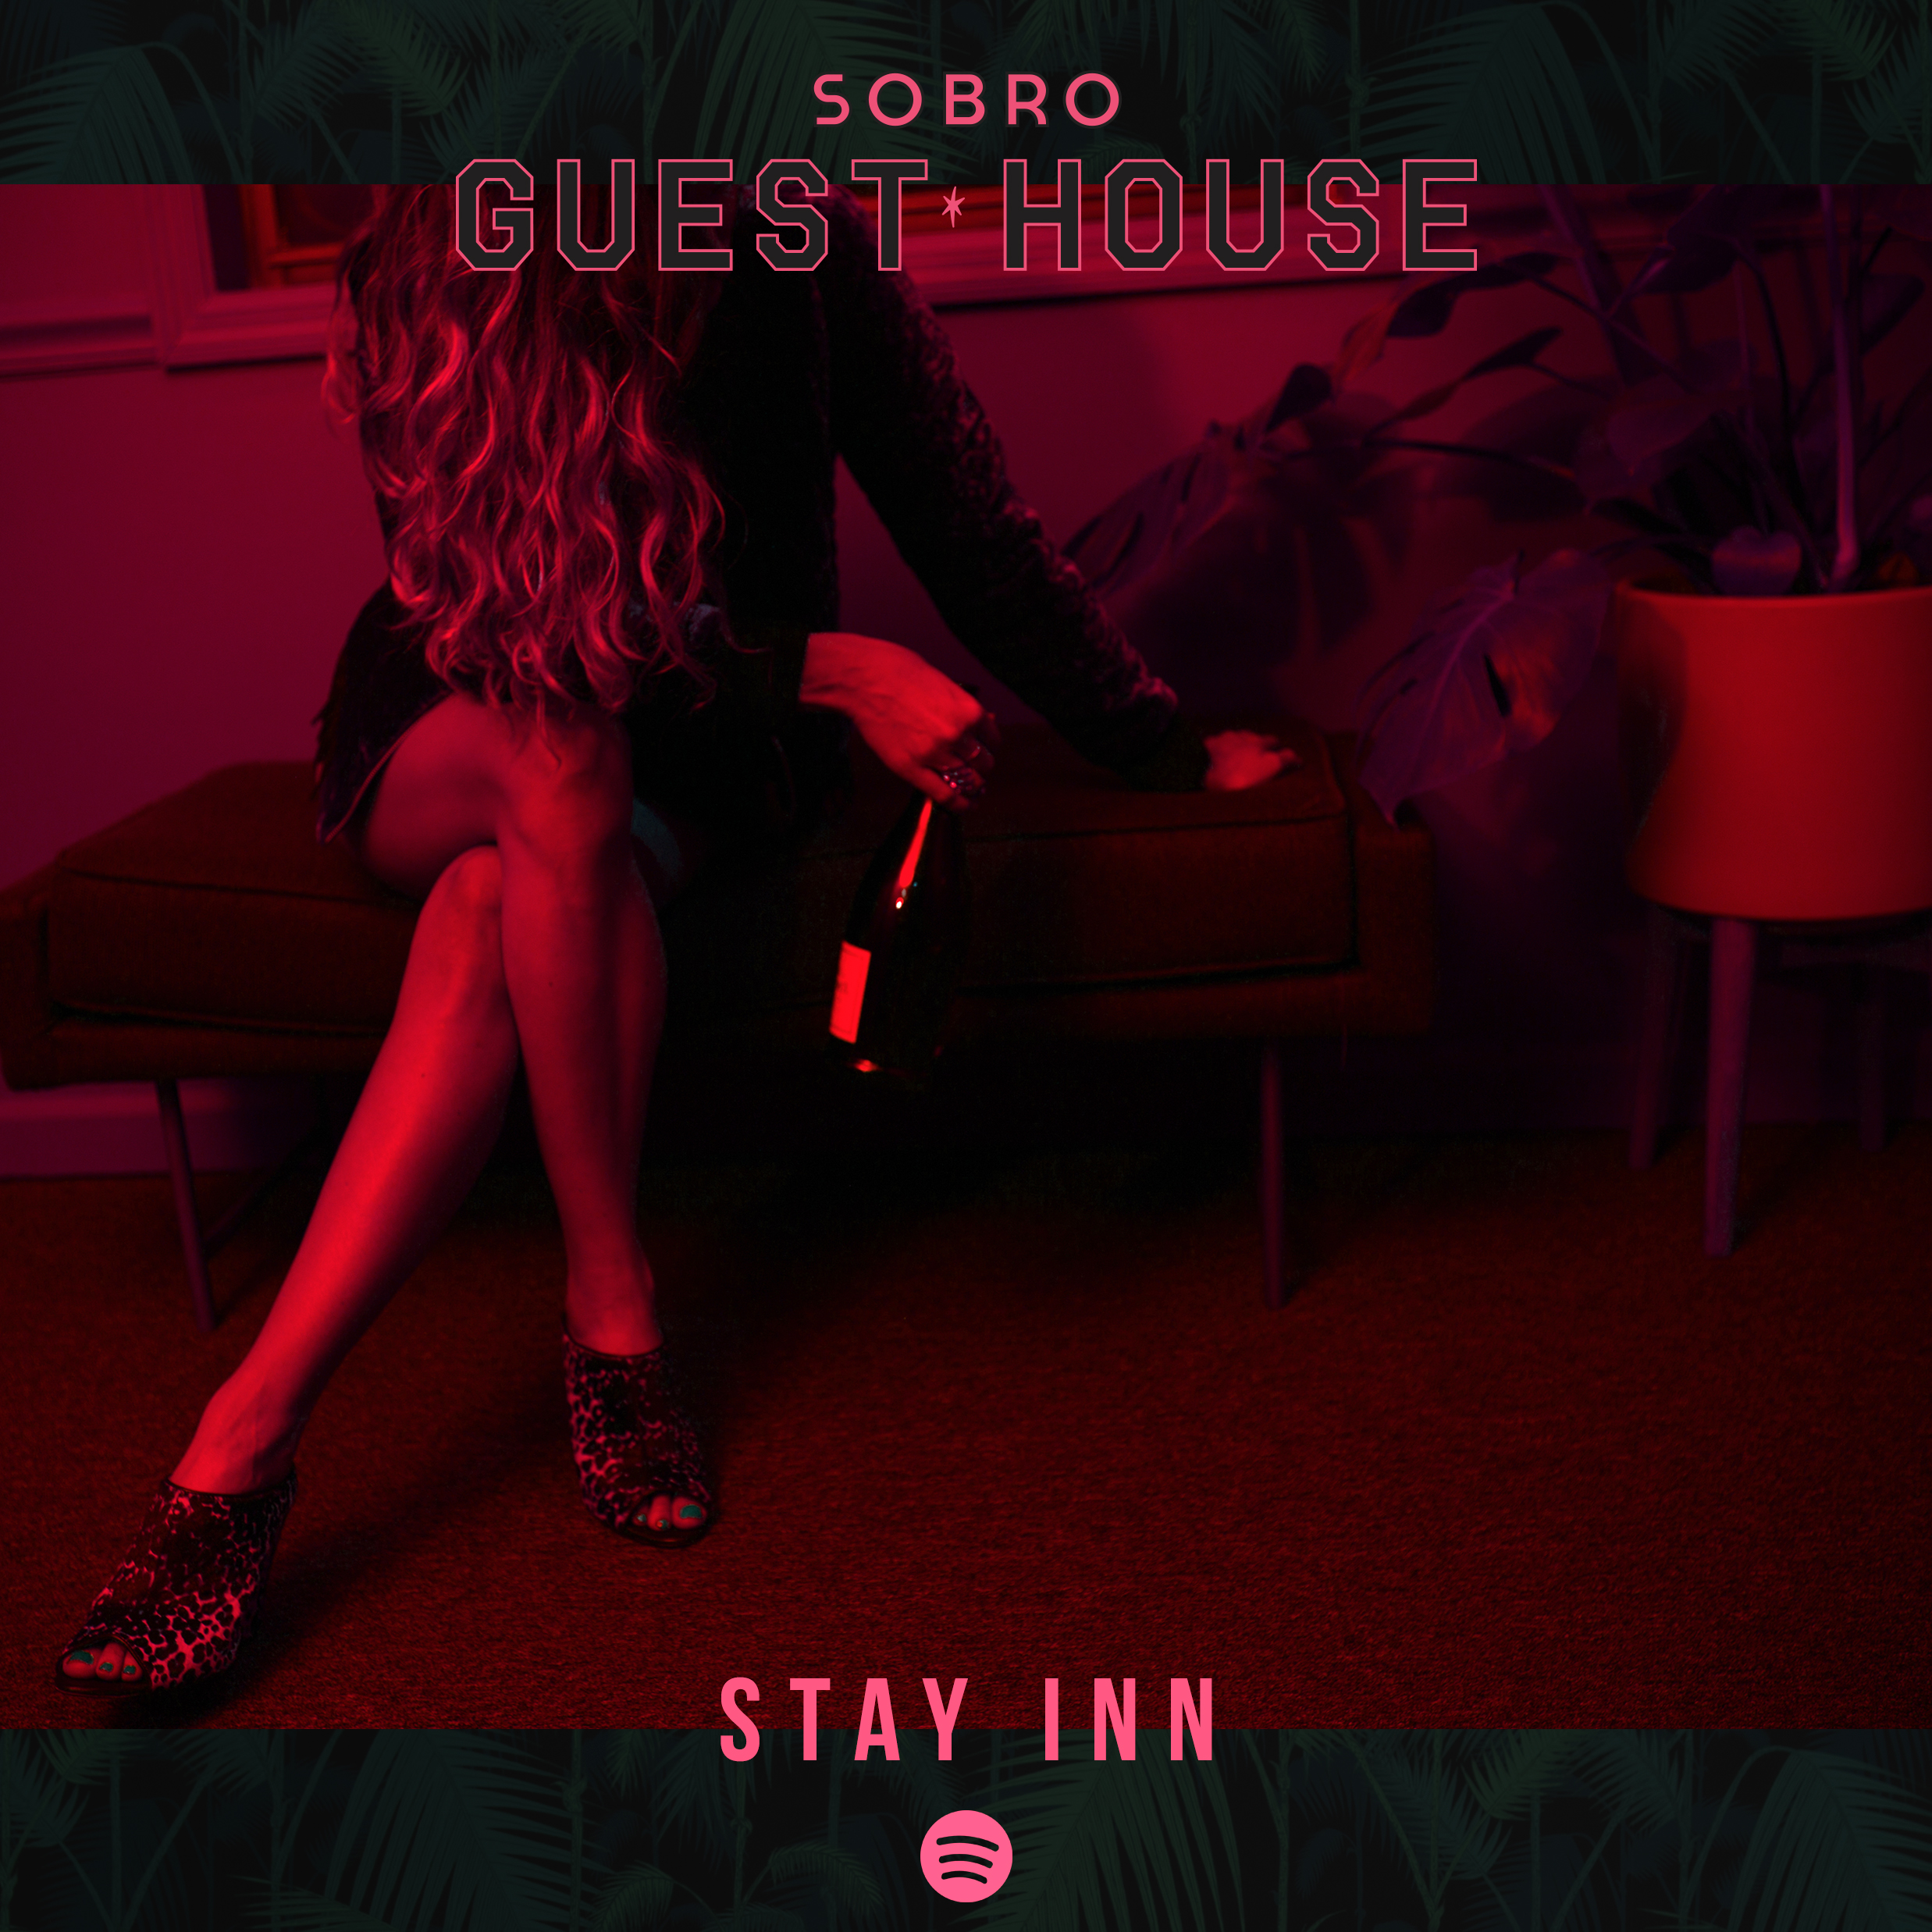 gh stay inn cover.jpg